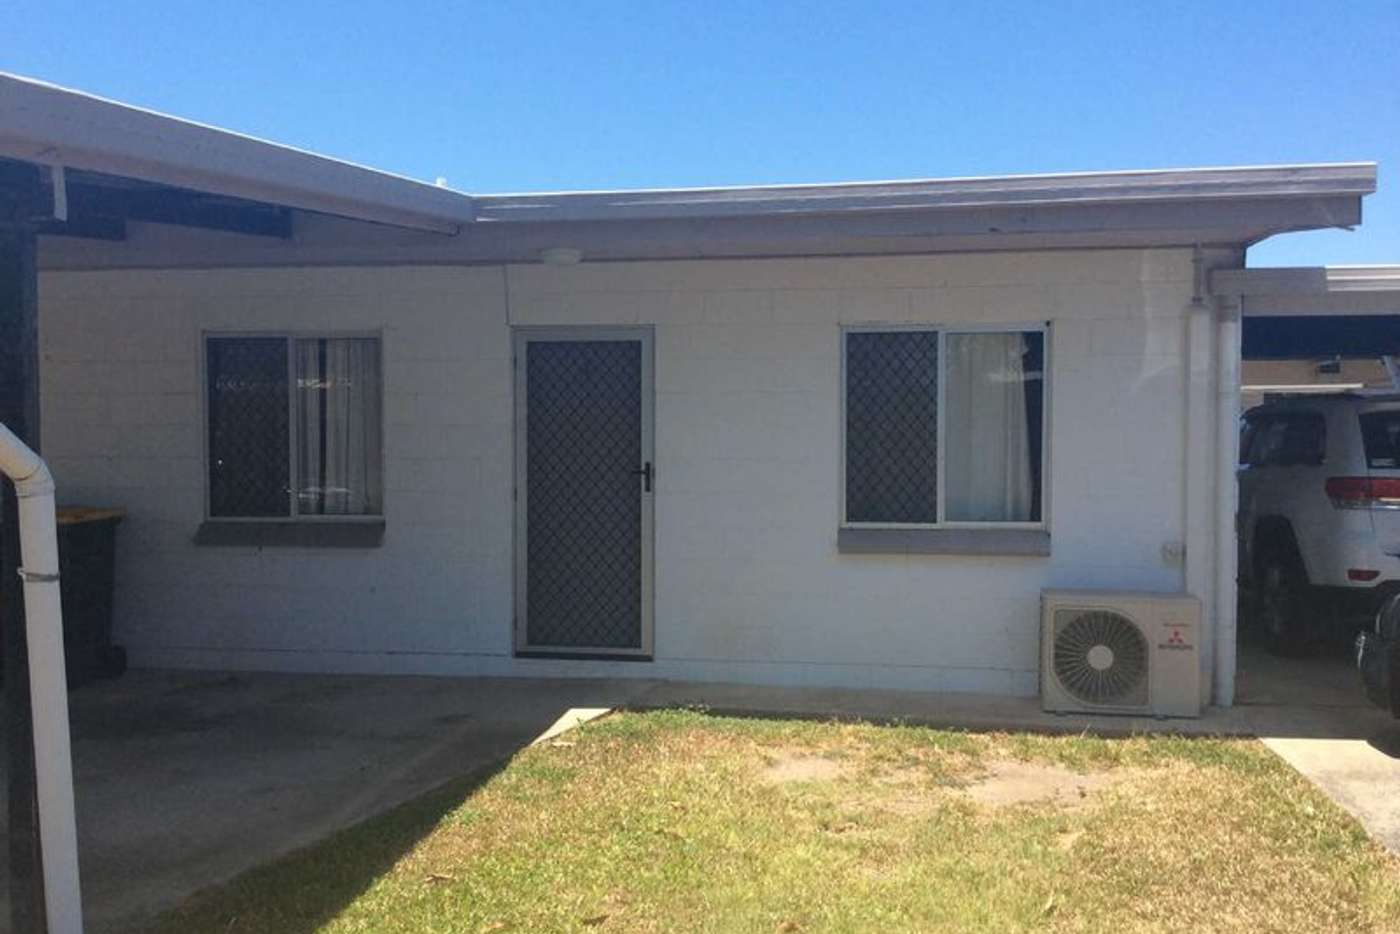 Main view of Homely unit listing, 4/30 Canberra Street, Mackay QLD 4740